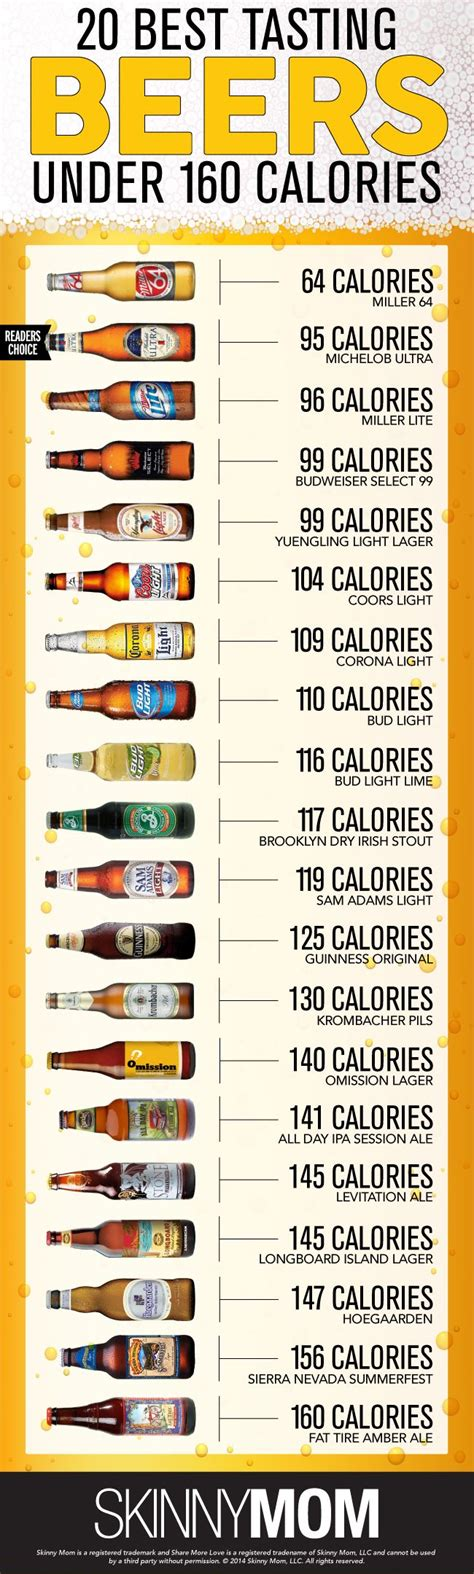 how many calories in a corona light 20 best tasting beers 160 calories alzheimers